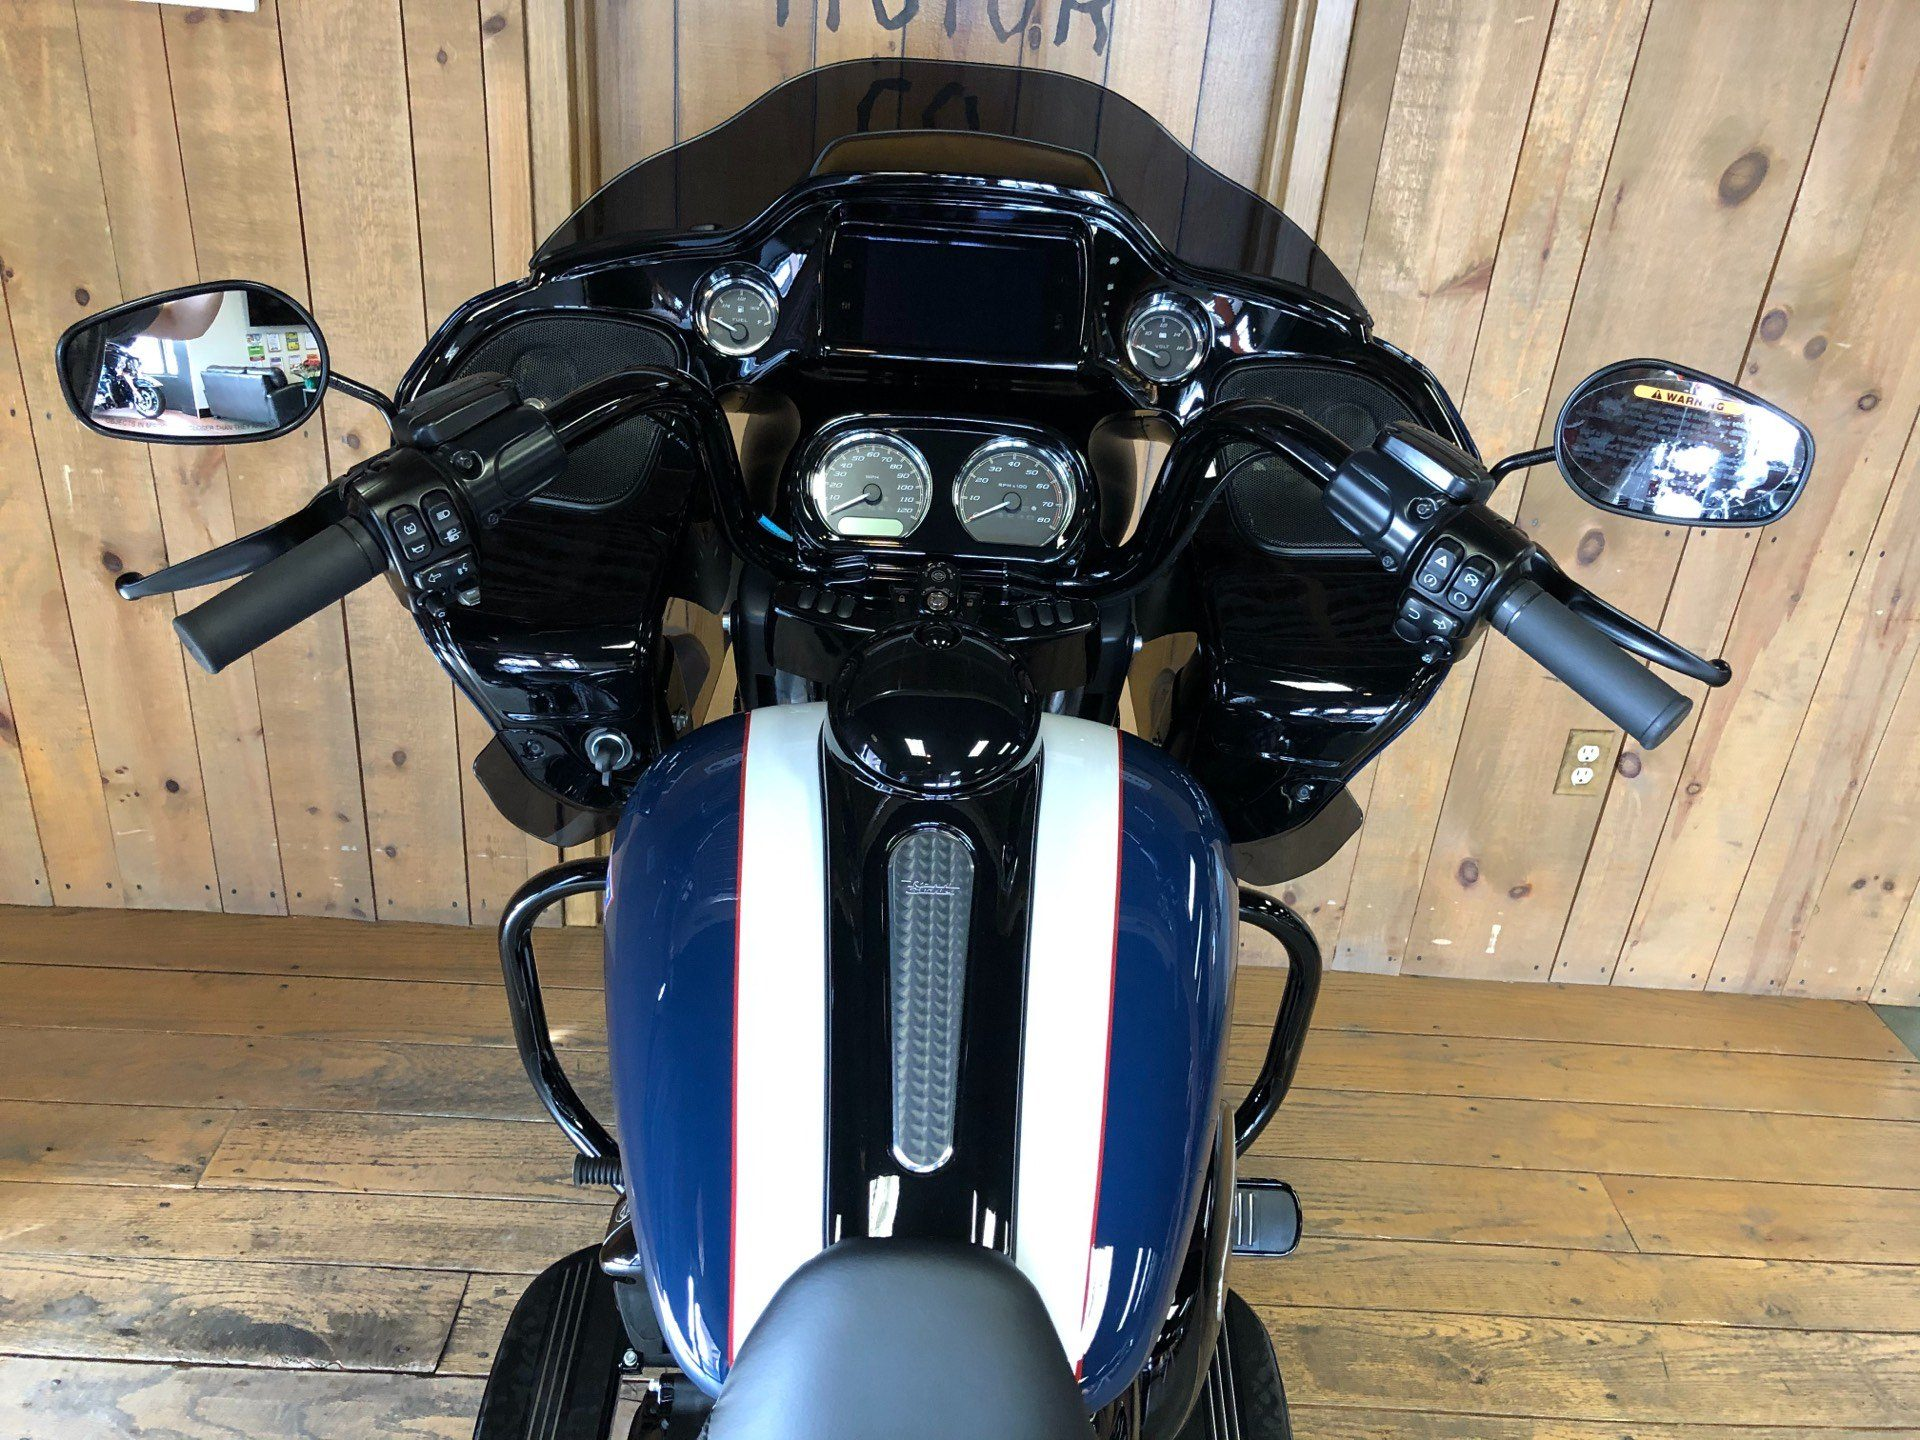 2020 Harley-Davidson Road Glide Special in Harrisburg, Pennsylvania - Photo 5